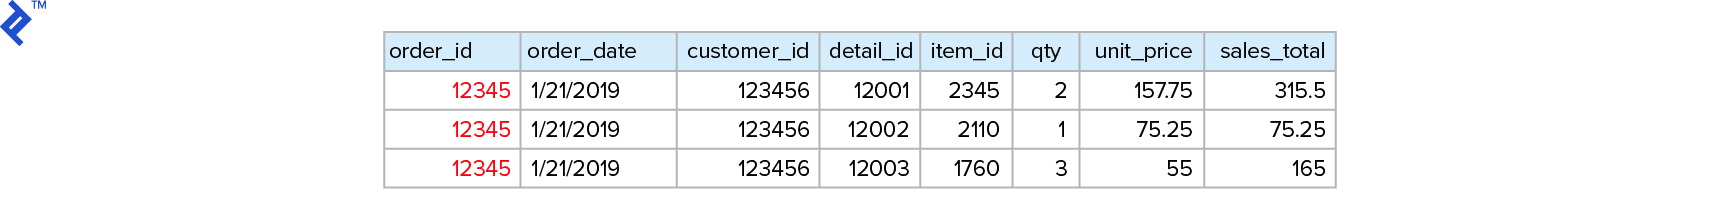 The 3NF model denormalized into a single table with order_id, order_date, customer_id, detail_id, item_id, qty, unit_price, and sales_total columns.